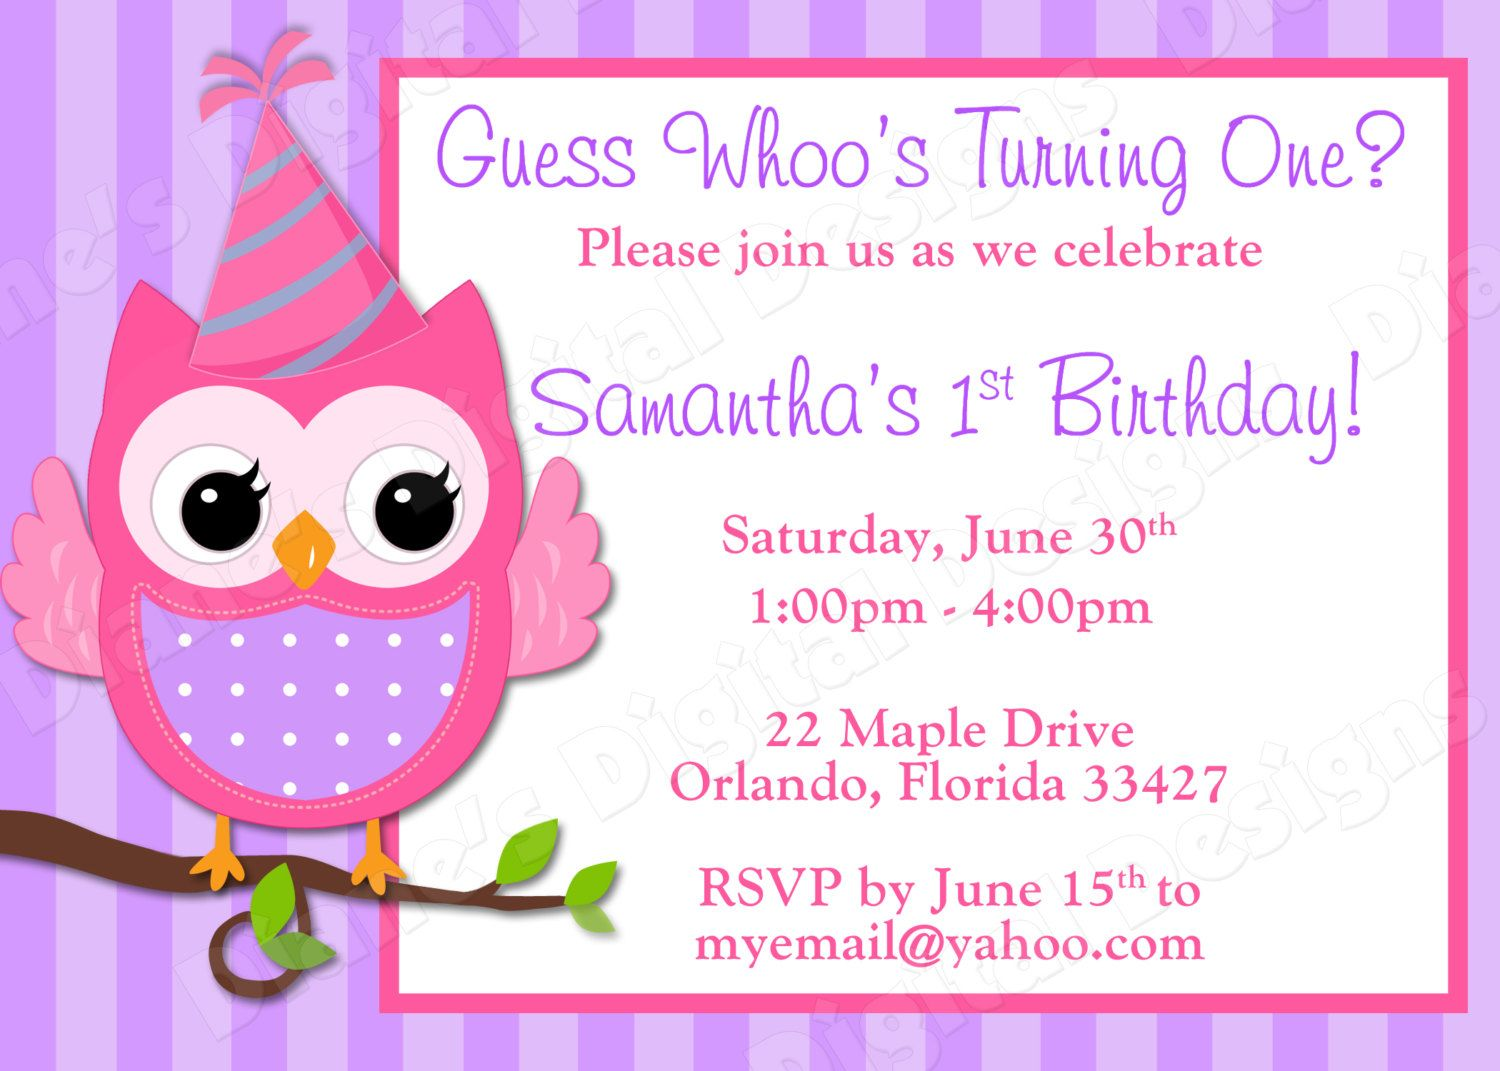 Owl Birthday Party Invitations For Aurel Online Birthday Invitations First Birthday Invitations Birthday Invitation Templates